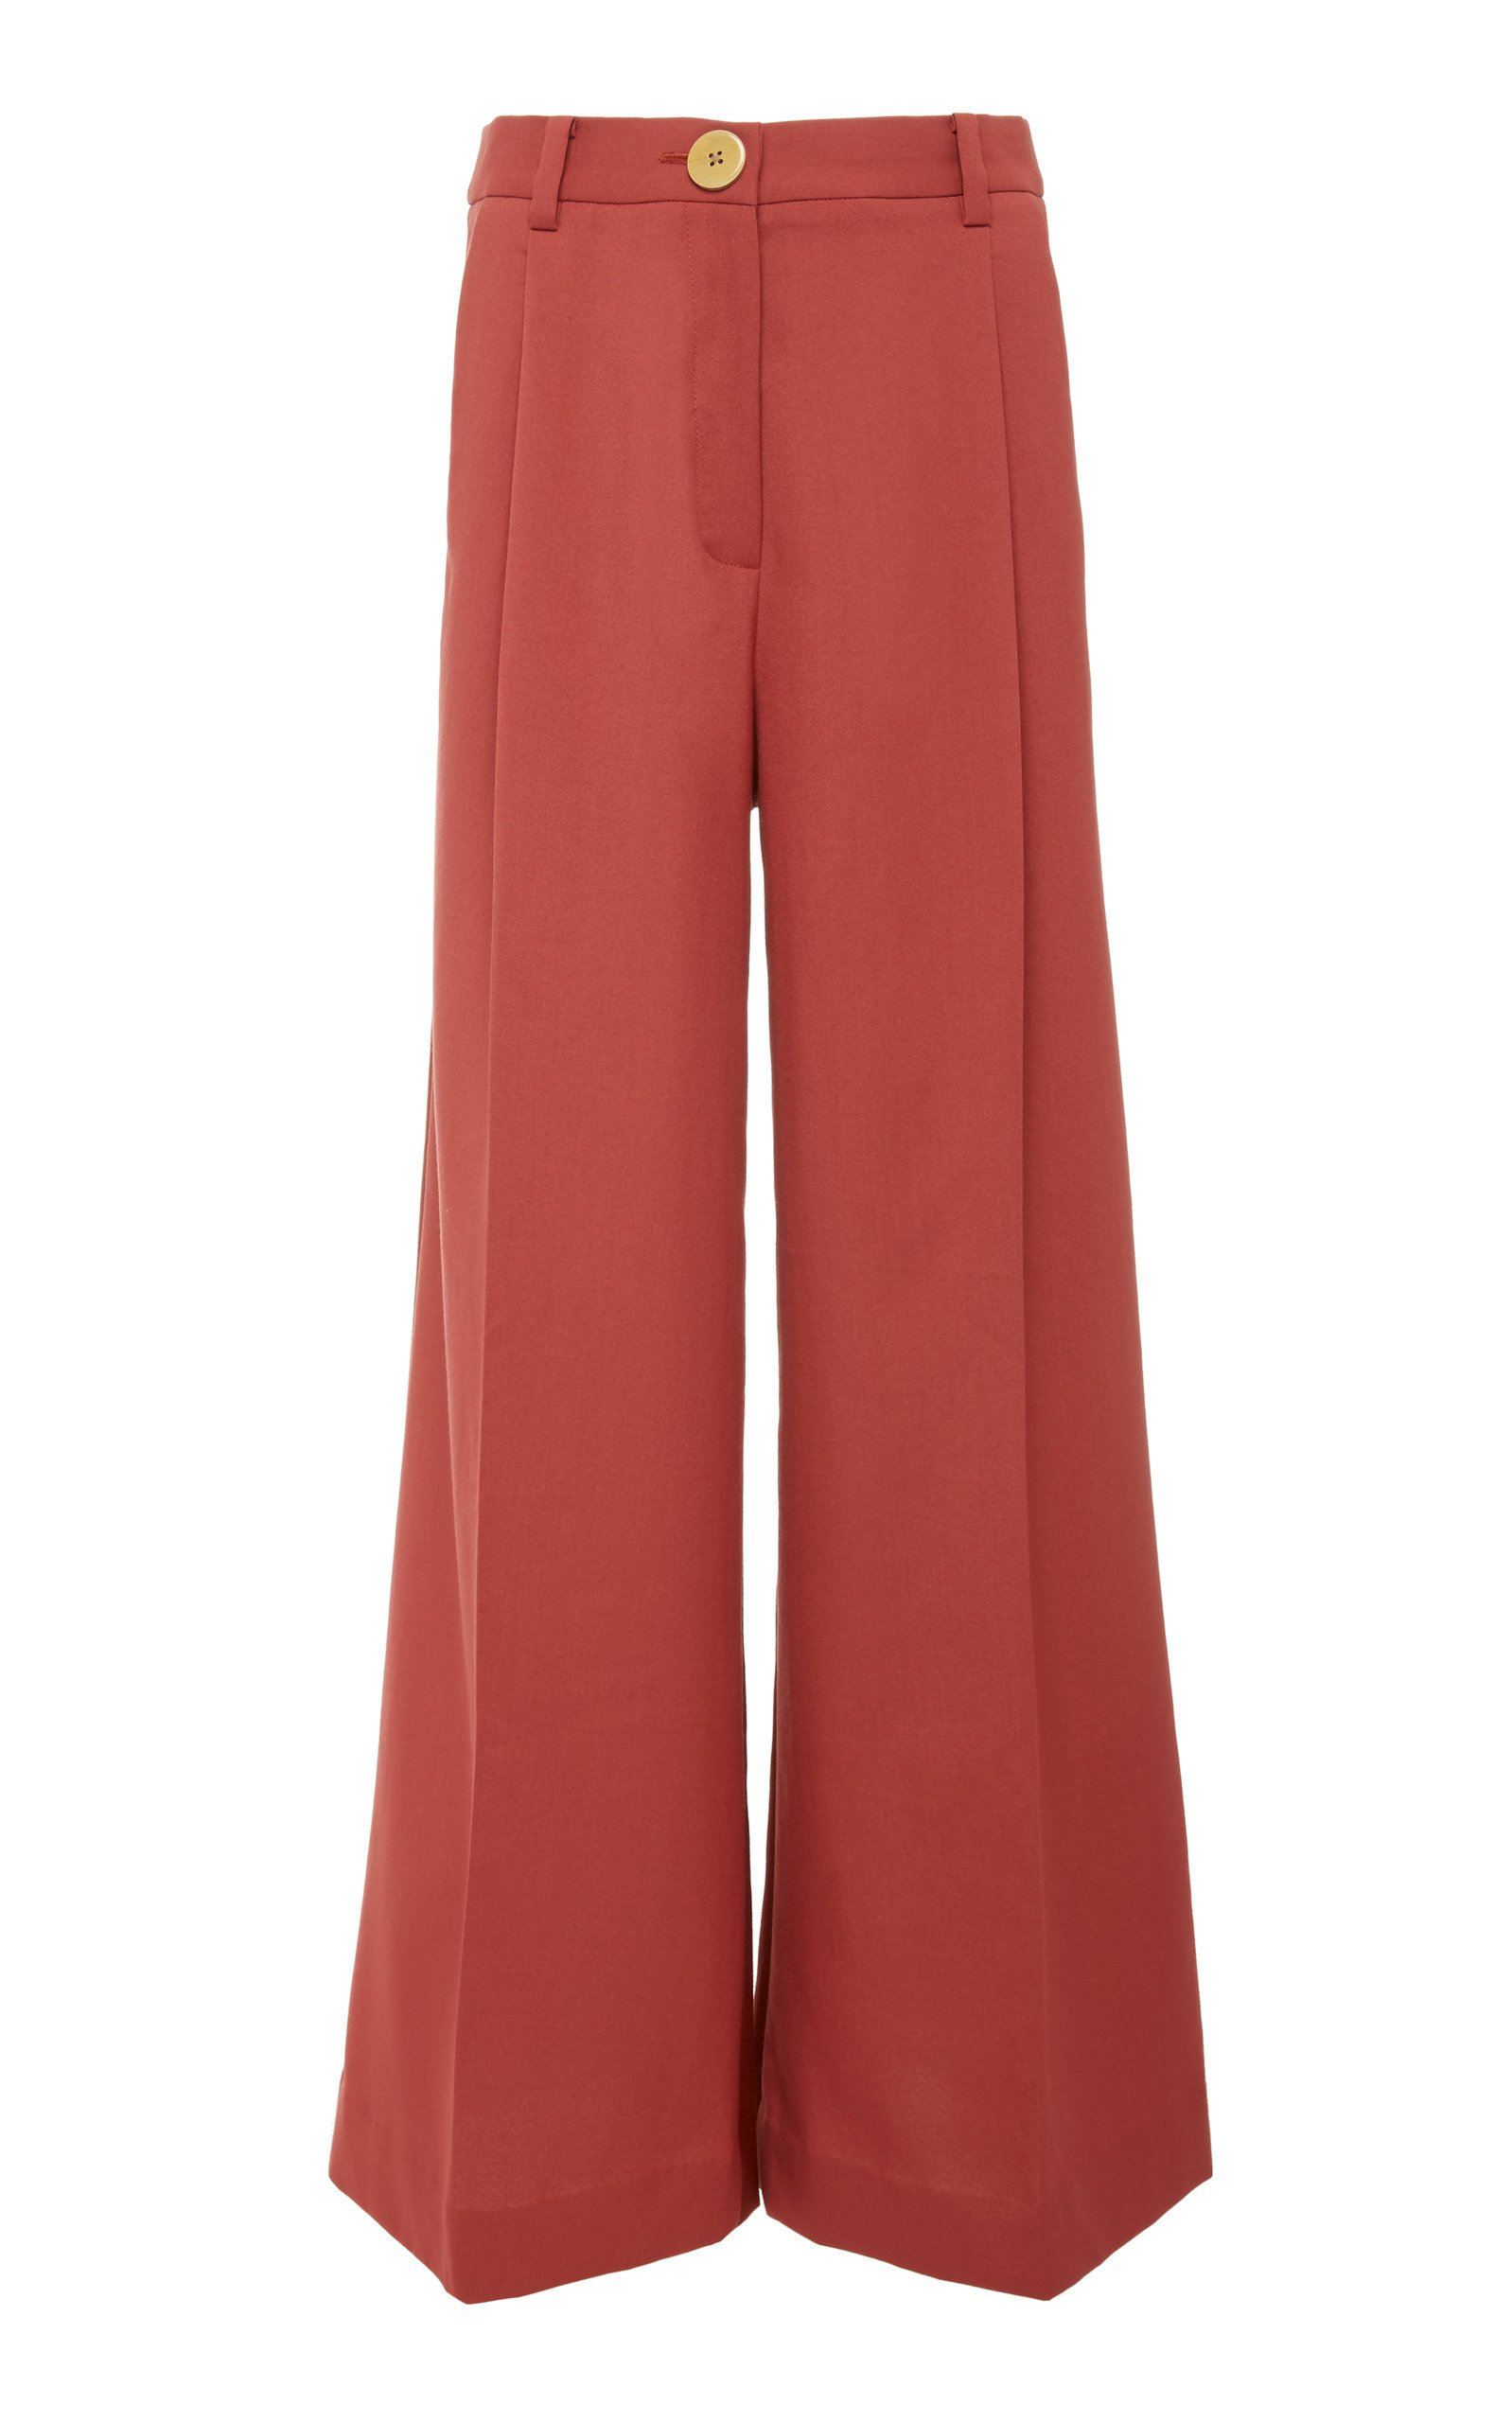 Bouguessa Two-Tone High Waisted Wide Leg Pants Size: XS